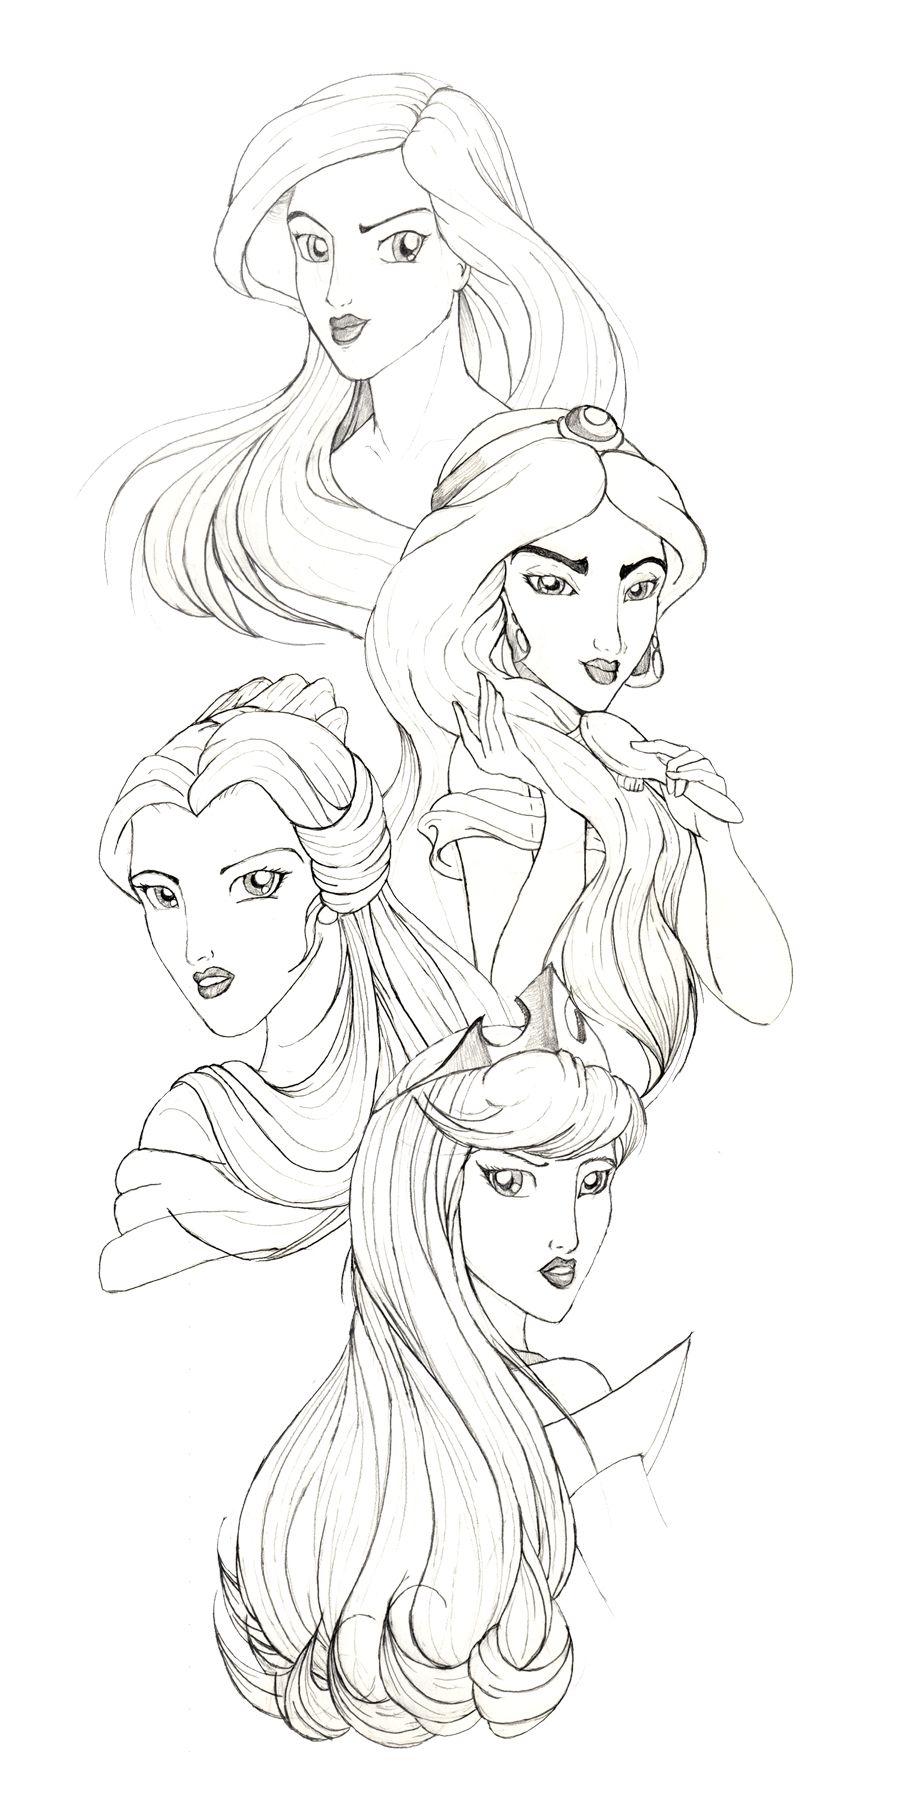 All disney princess together coloring pages - Disney Drawings Disney Princesses By Racookie3 Fan Art Traditional Art Drawings Movies